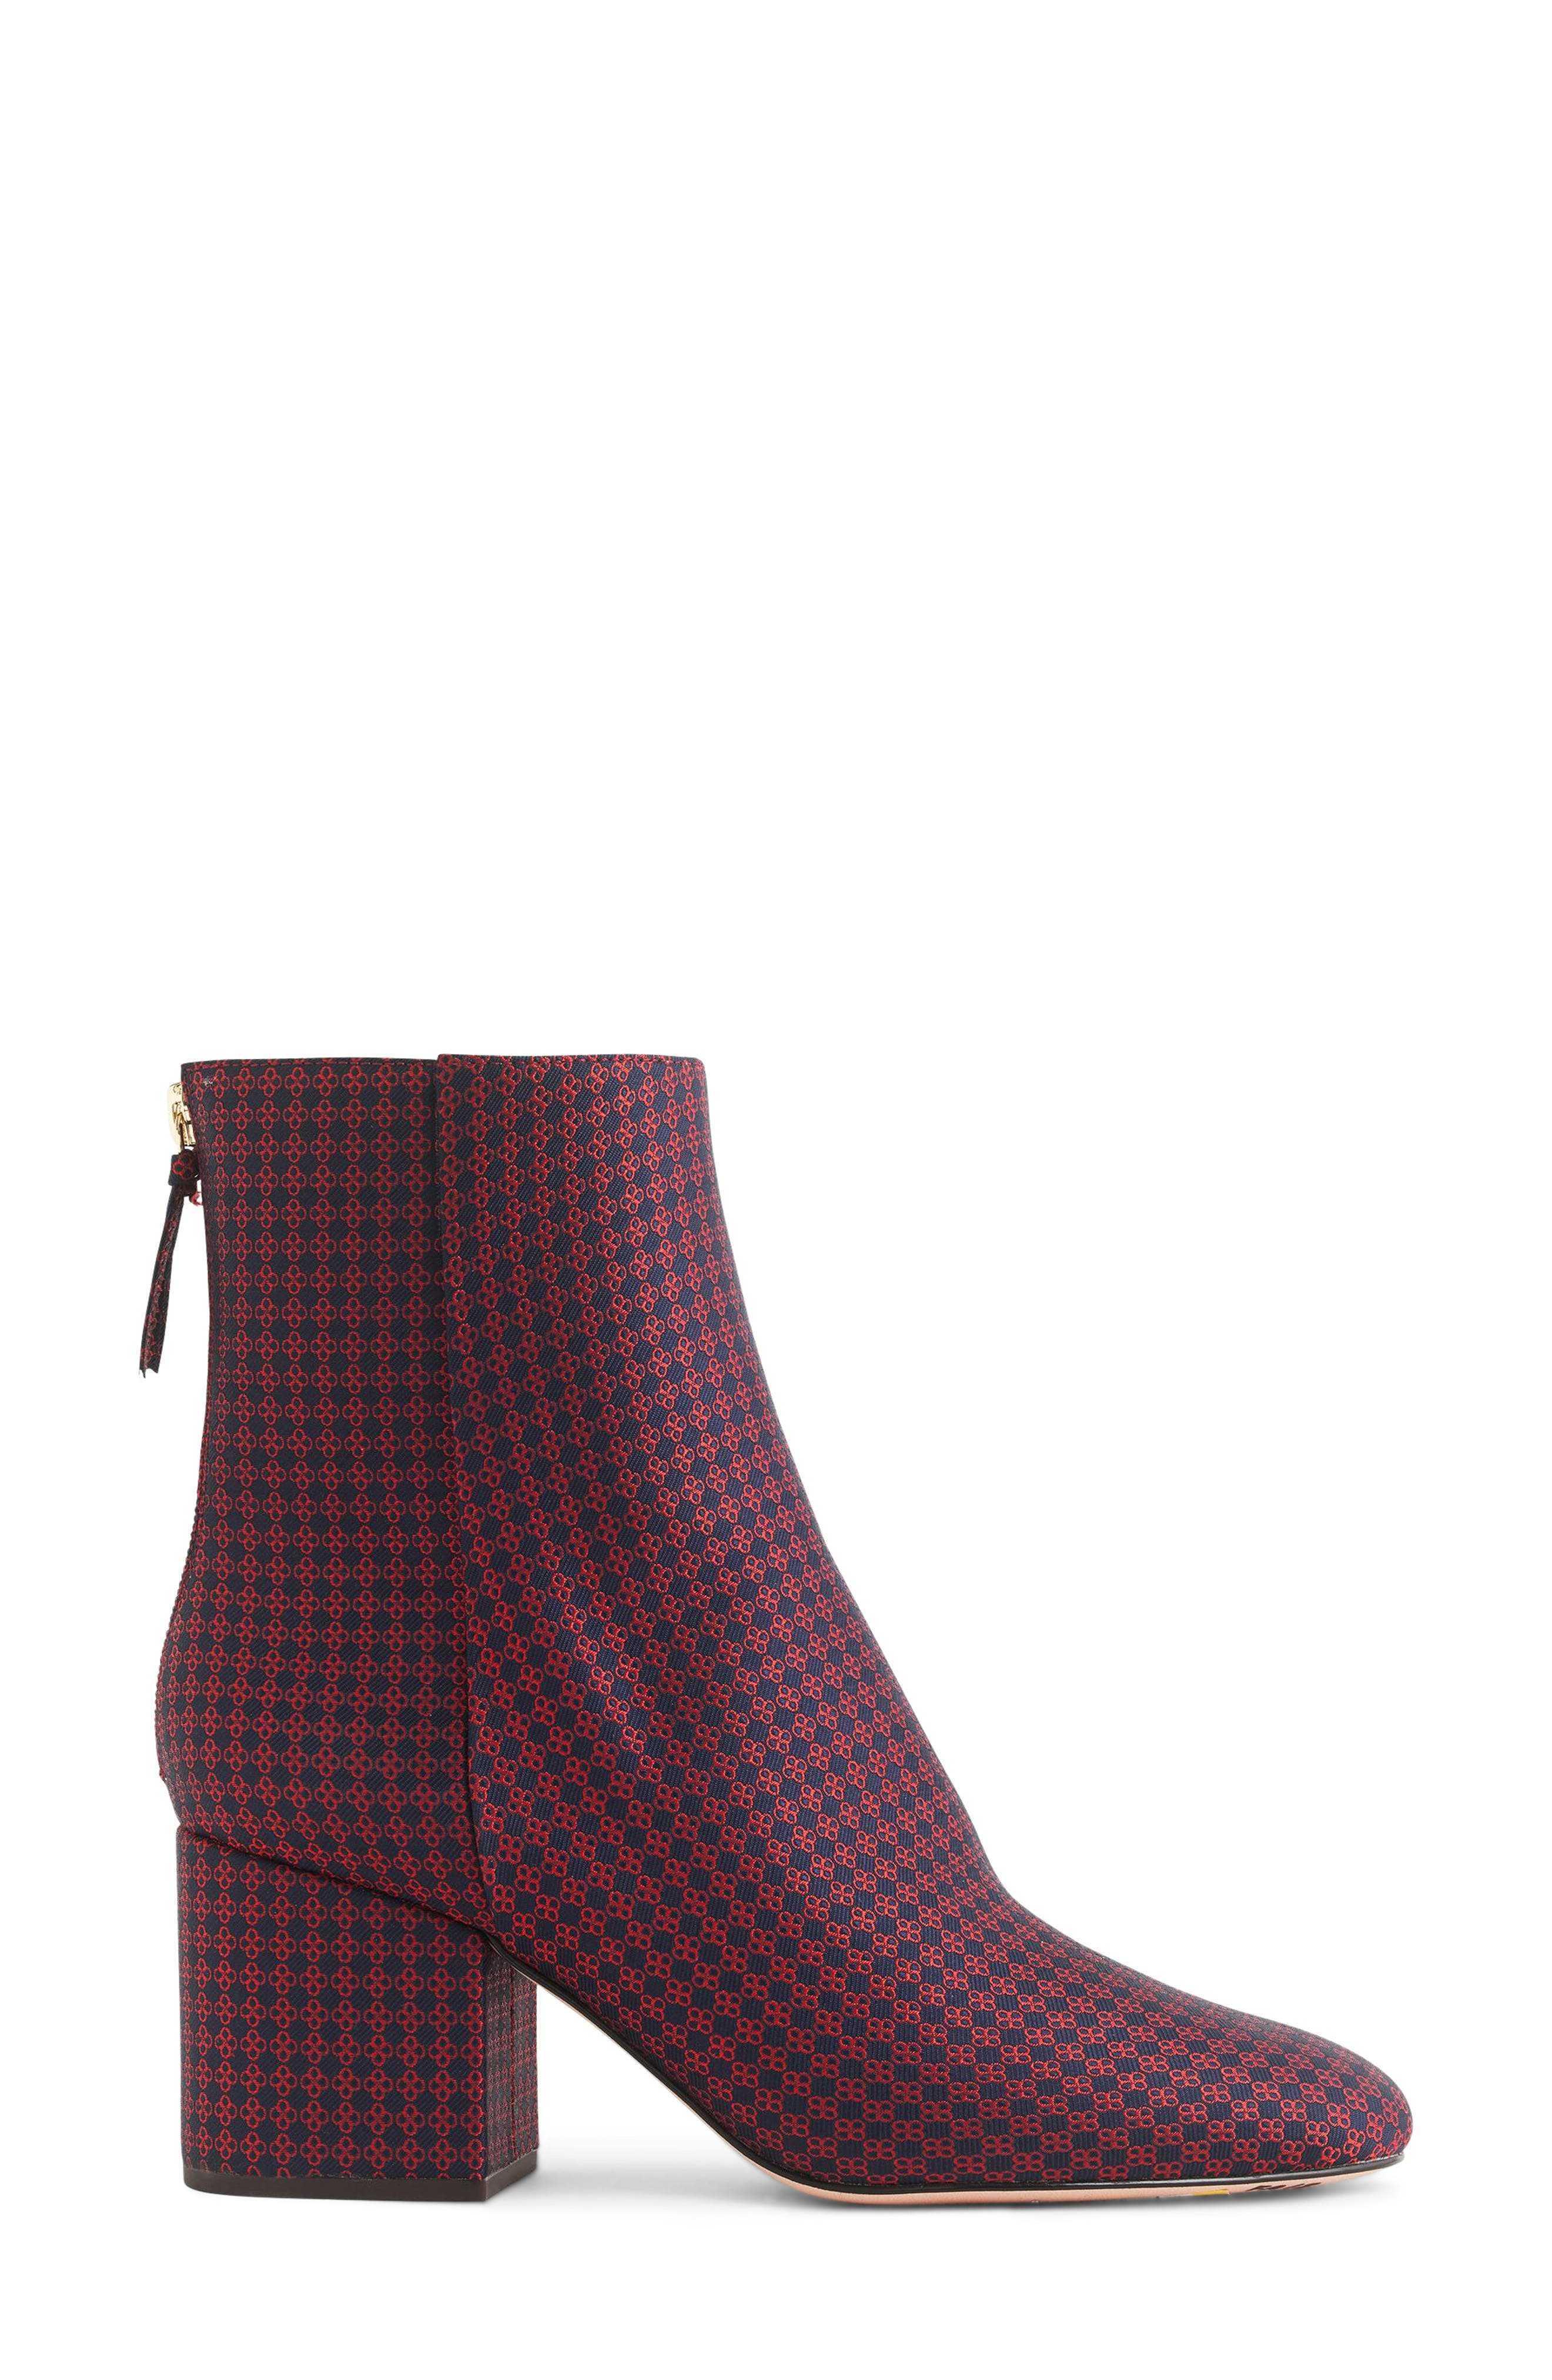 Maya Ankle Bootie,                             Alternate thumbnail 2, color,                             NAVY/ RED PLAID